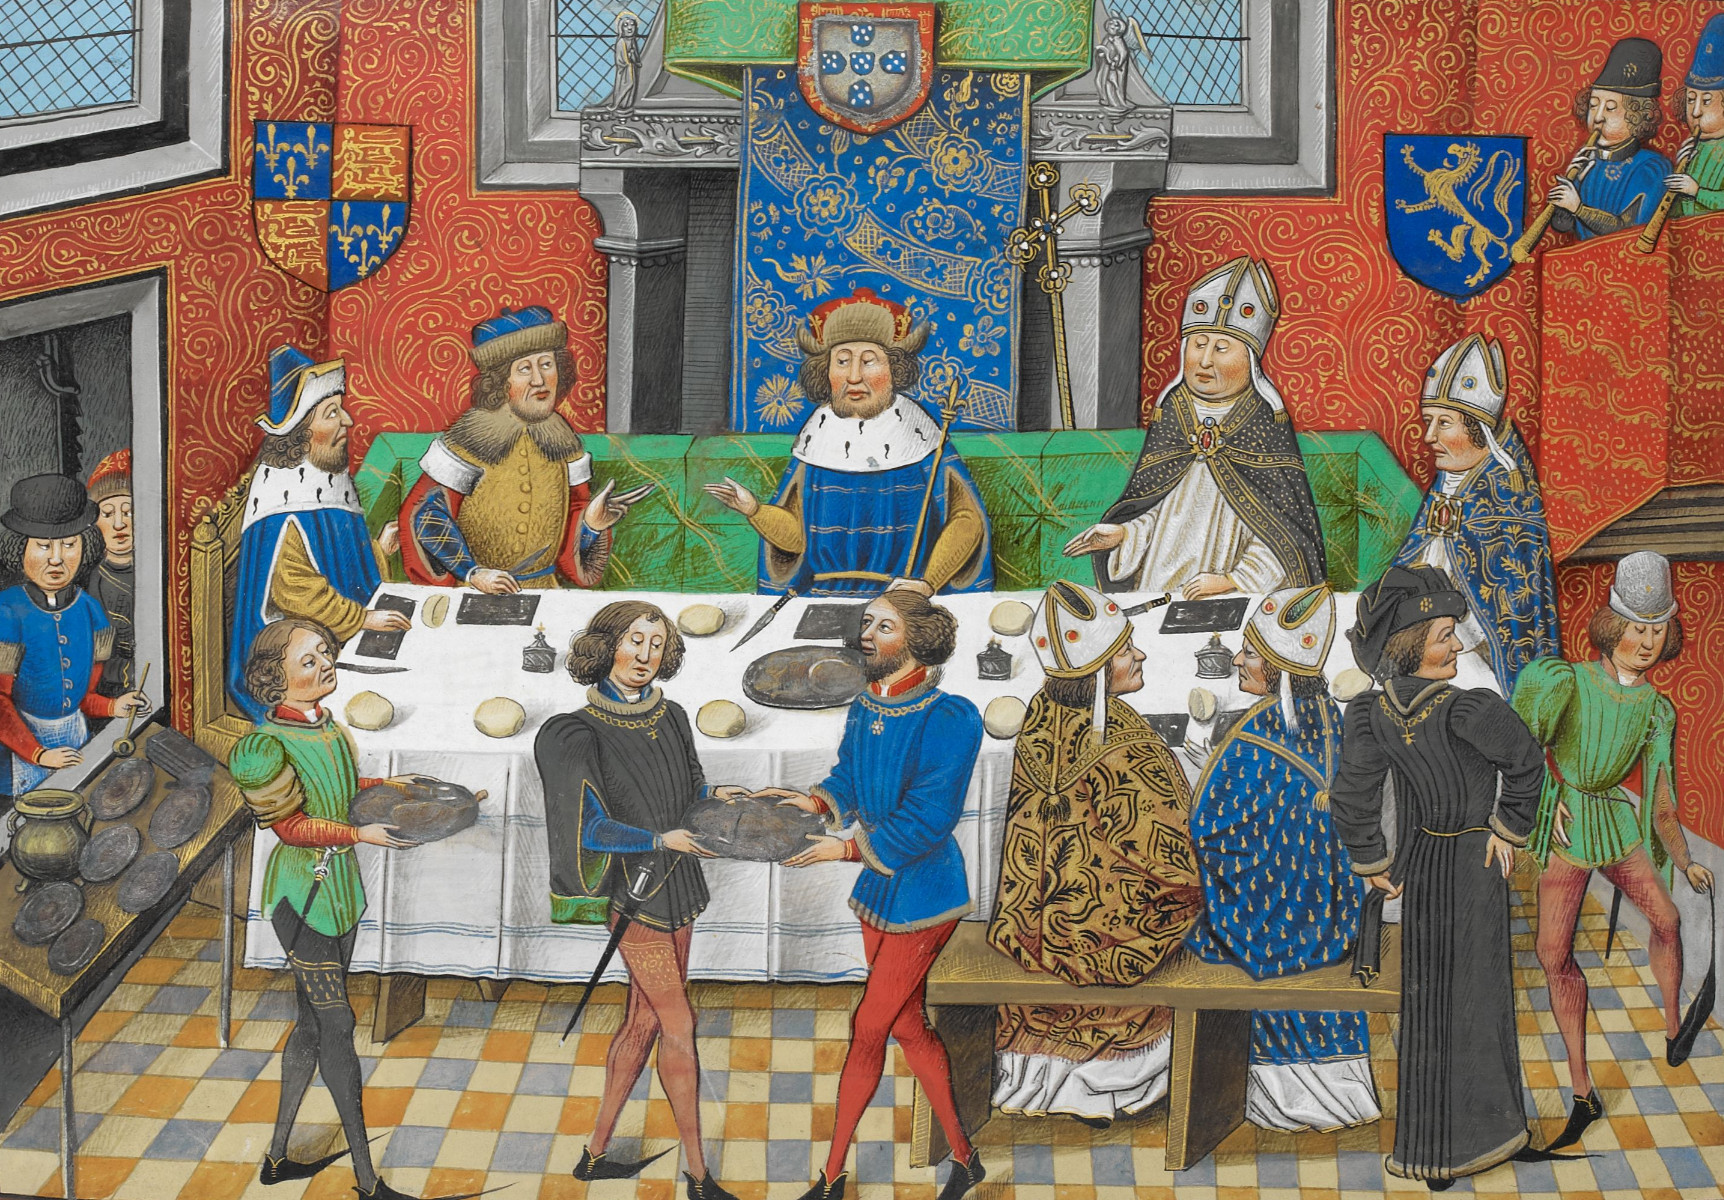 Dinner With The King  File John of Gaunt Duke of Lancaster dining with the King